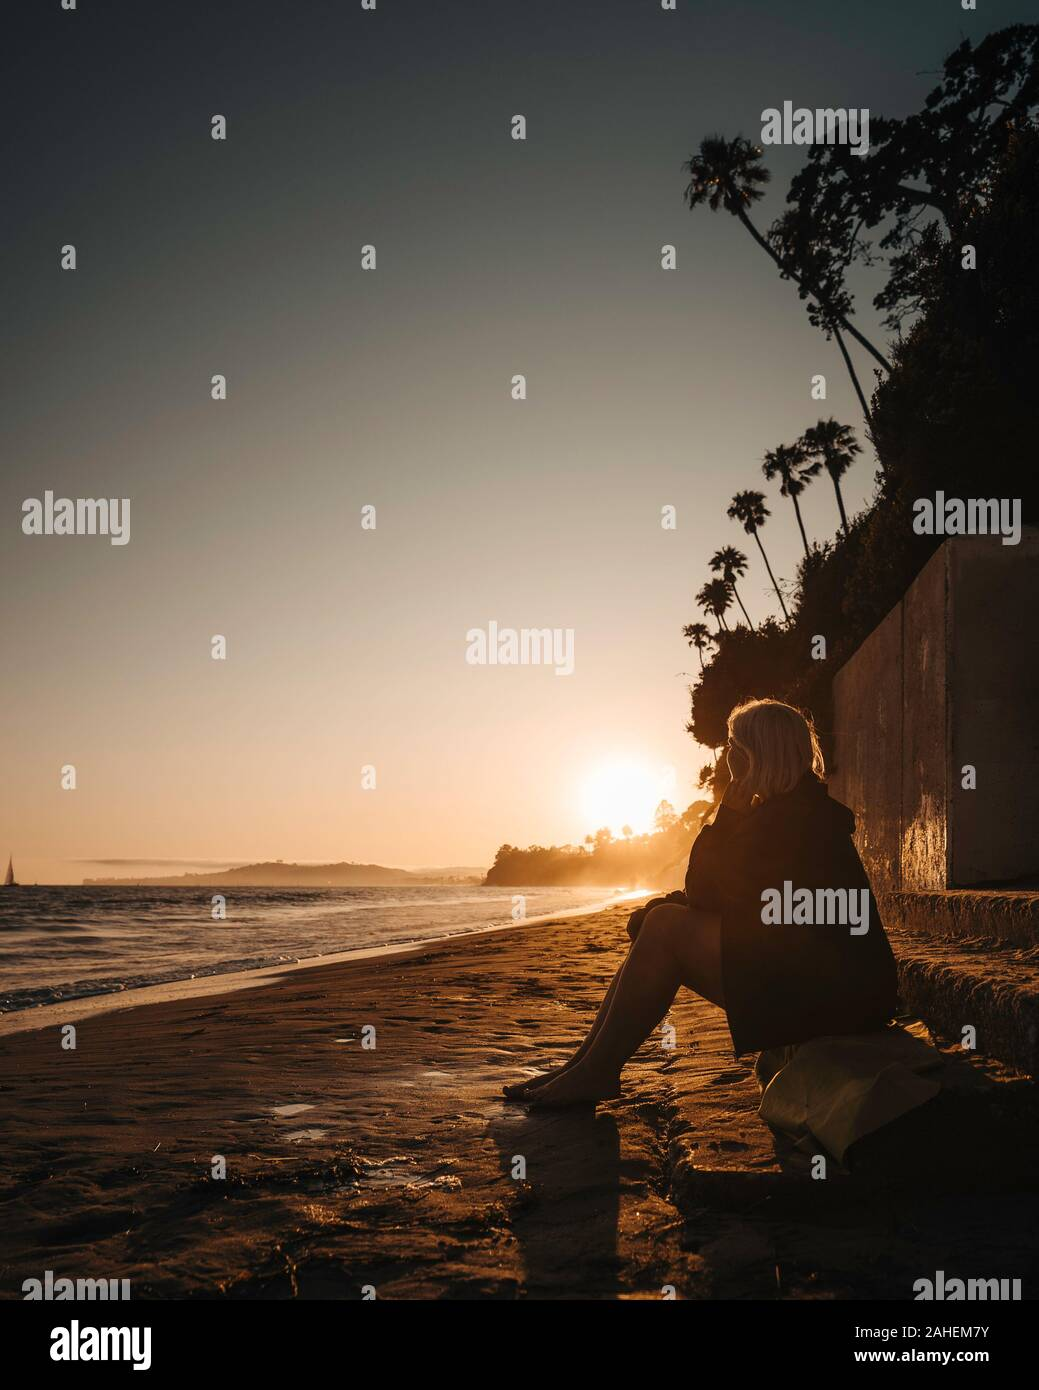 Women watches the sunset at the Beach Stock Photo